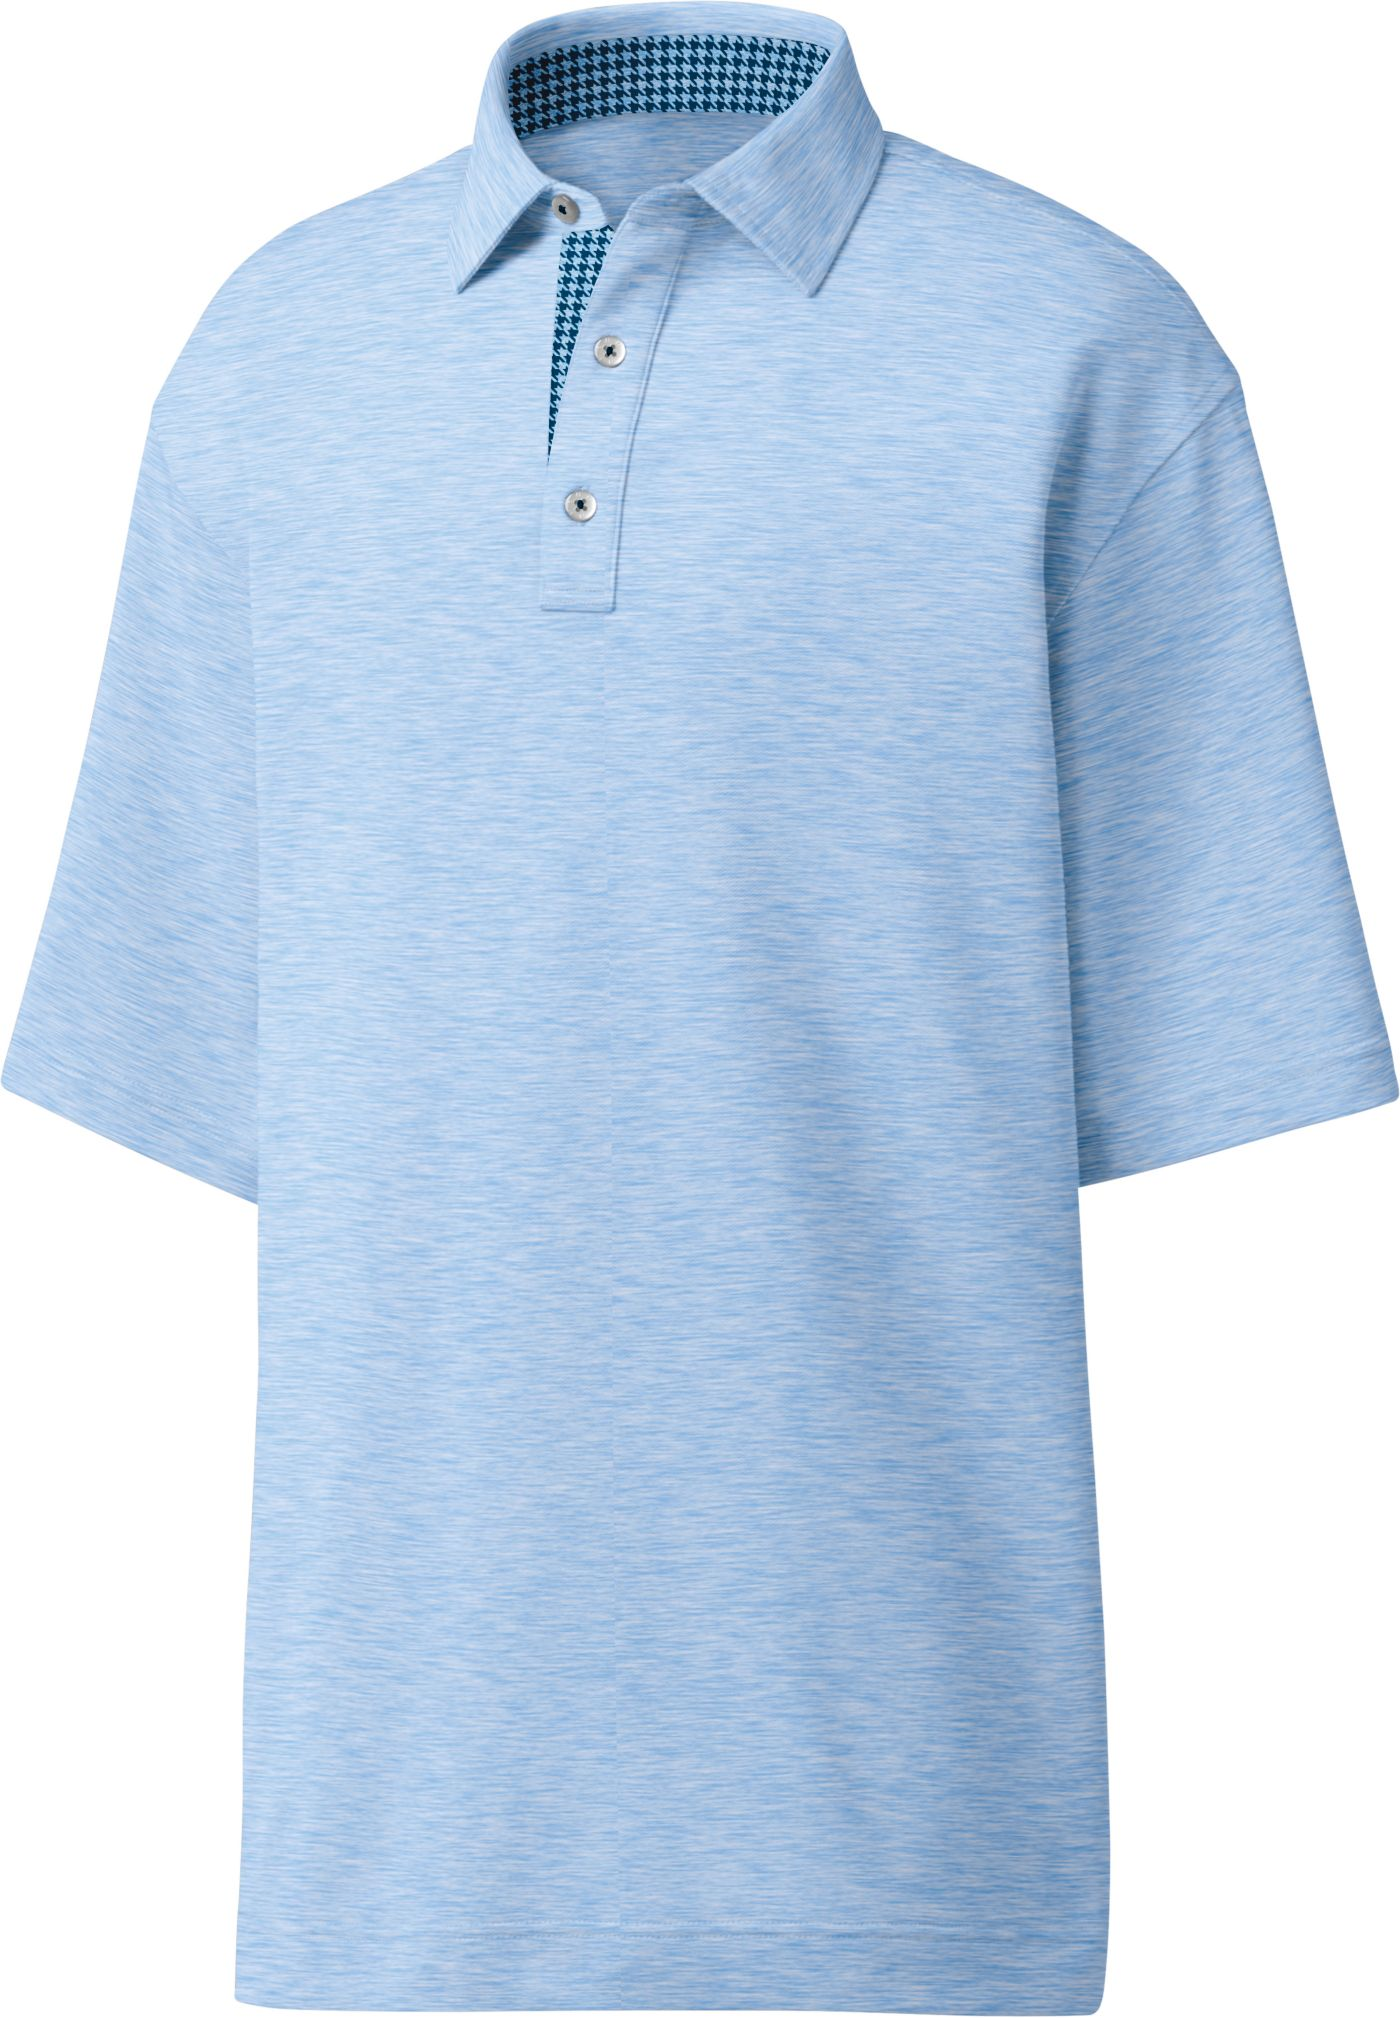 FootJoy Men's Heather Lisle Solid Golf Polo